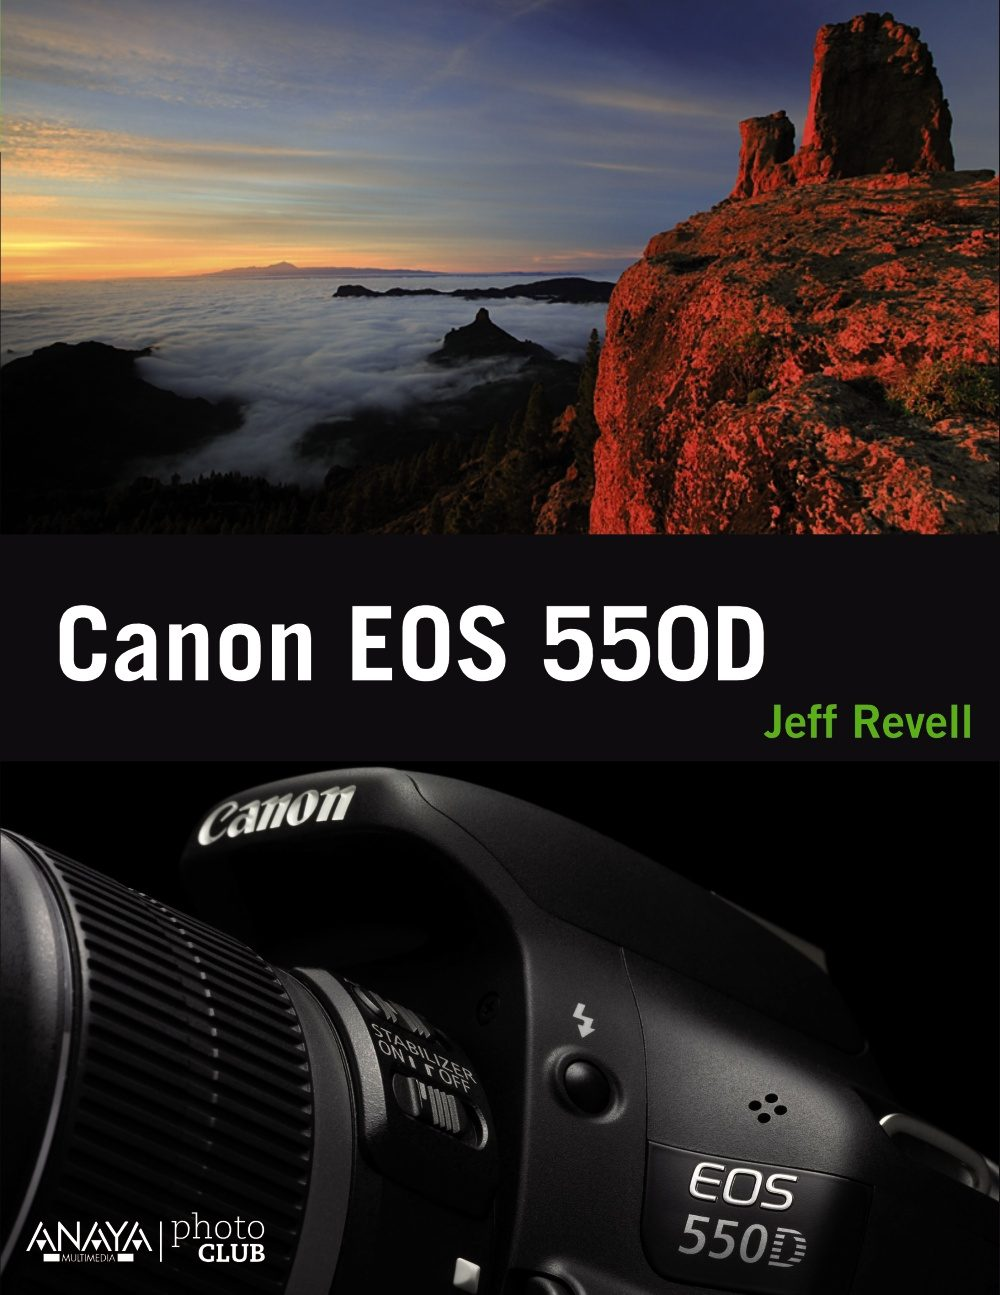 canon eos 550d-jeff revell-9788441529809